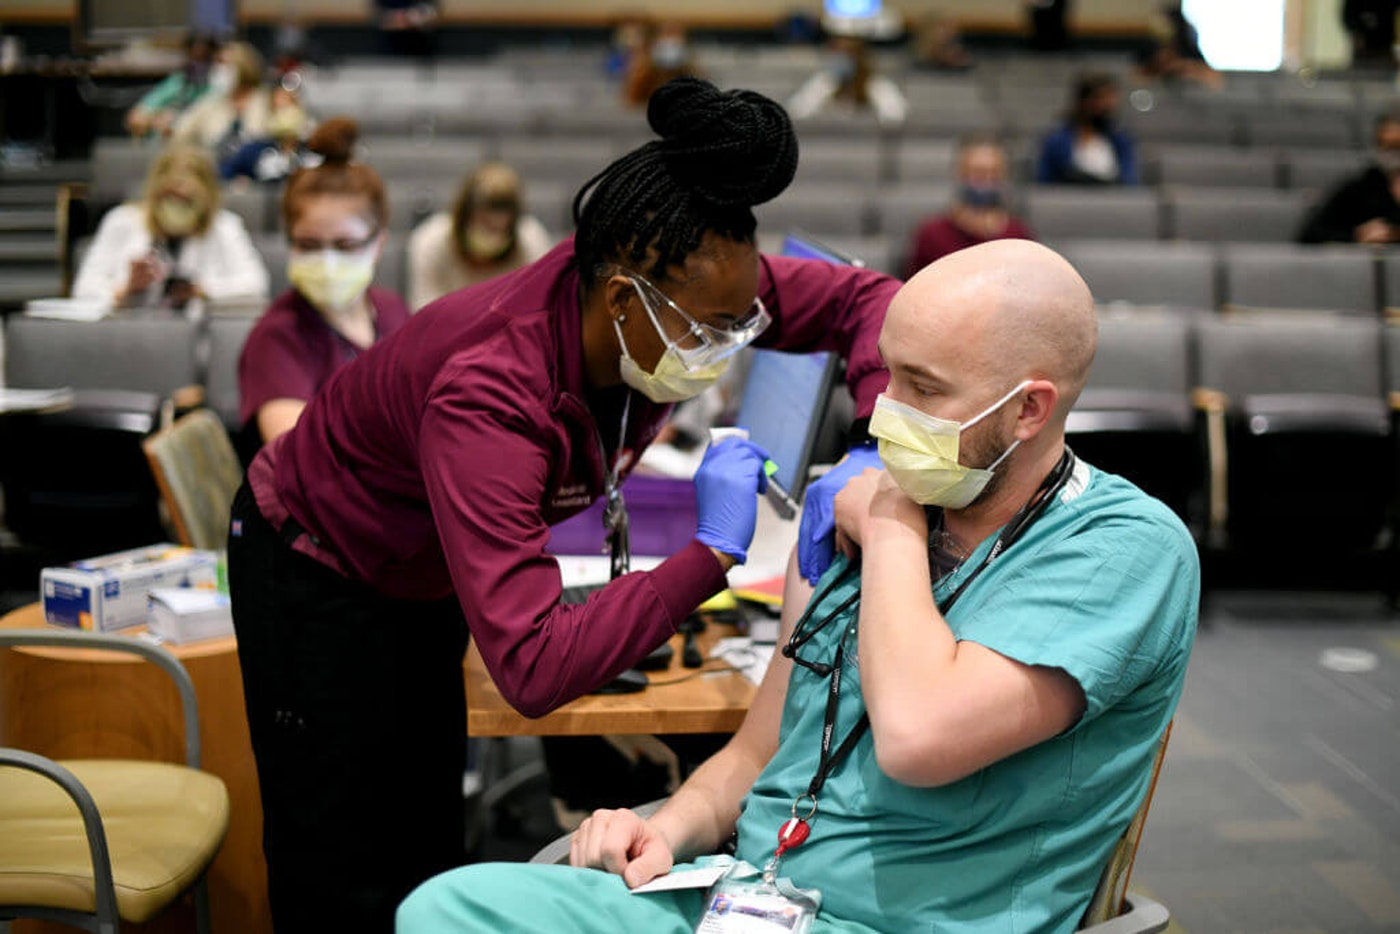 Medical assistant Shalice Wheeler, left, administers Covid-19 vaccine to physician assistant Matt Ferraro at UCHealth. (Photo by Hyoung Chang/MediaNews Group via Getty Images)